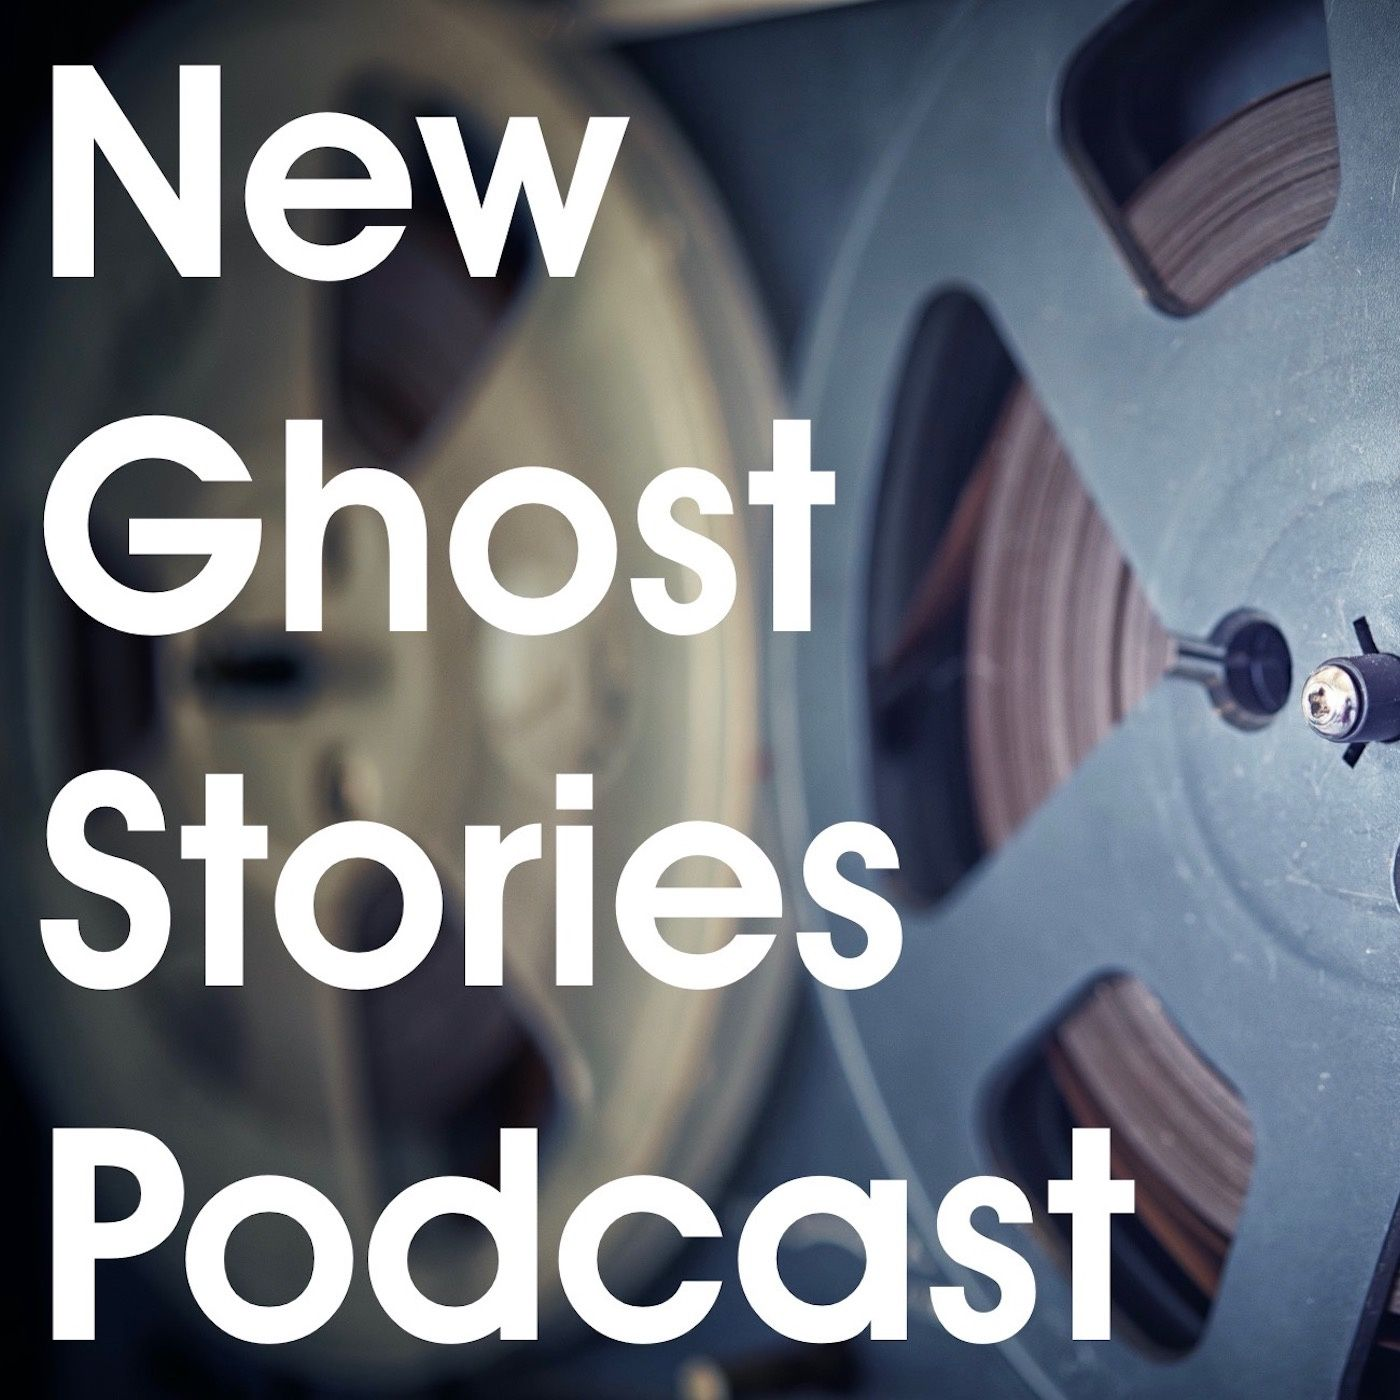 New Ghost Stories Podcast Ep1 - A Rhythm of Six